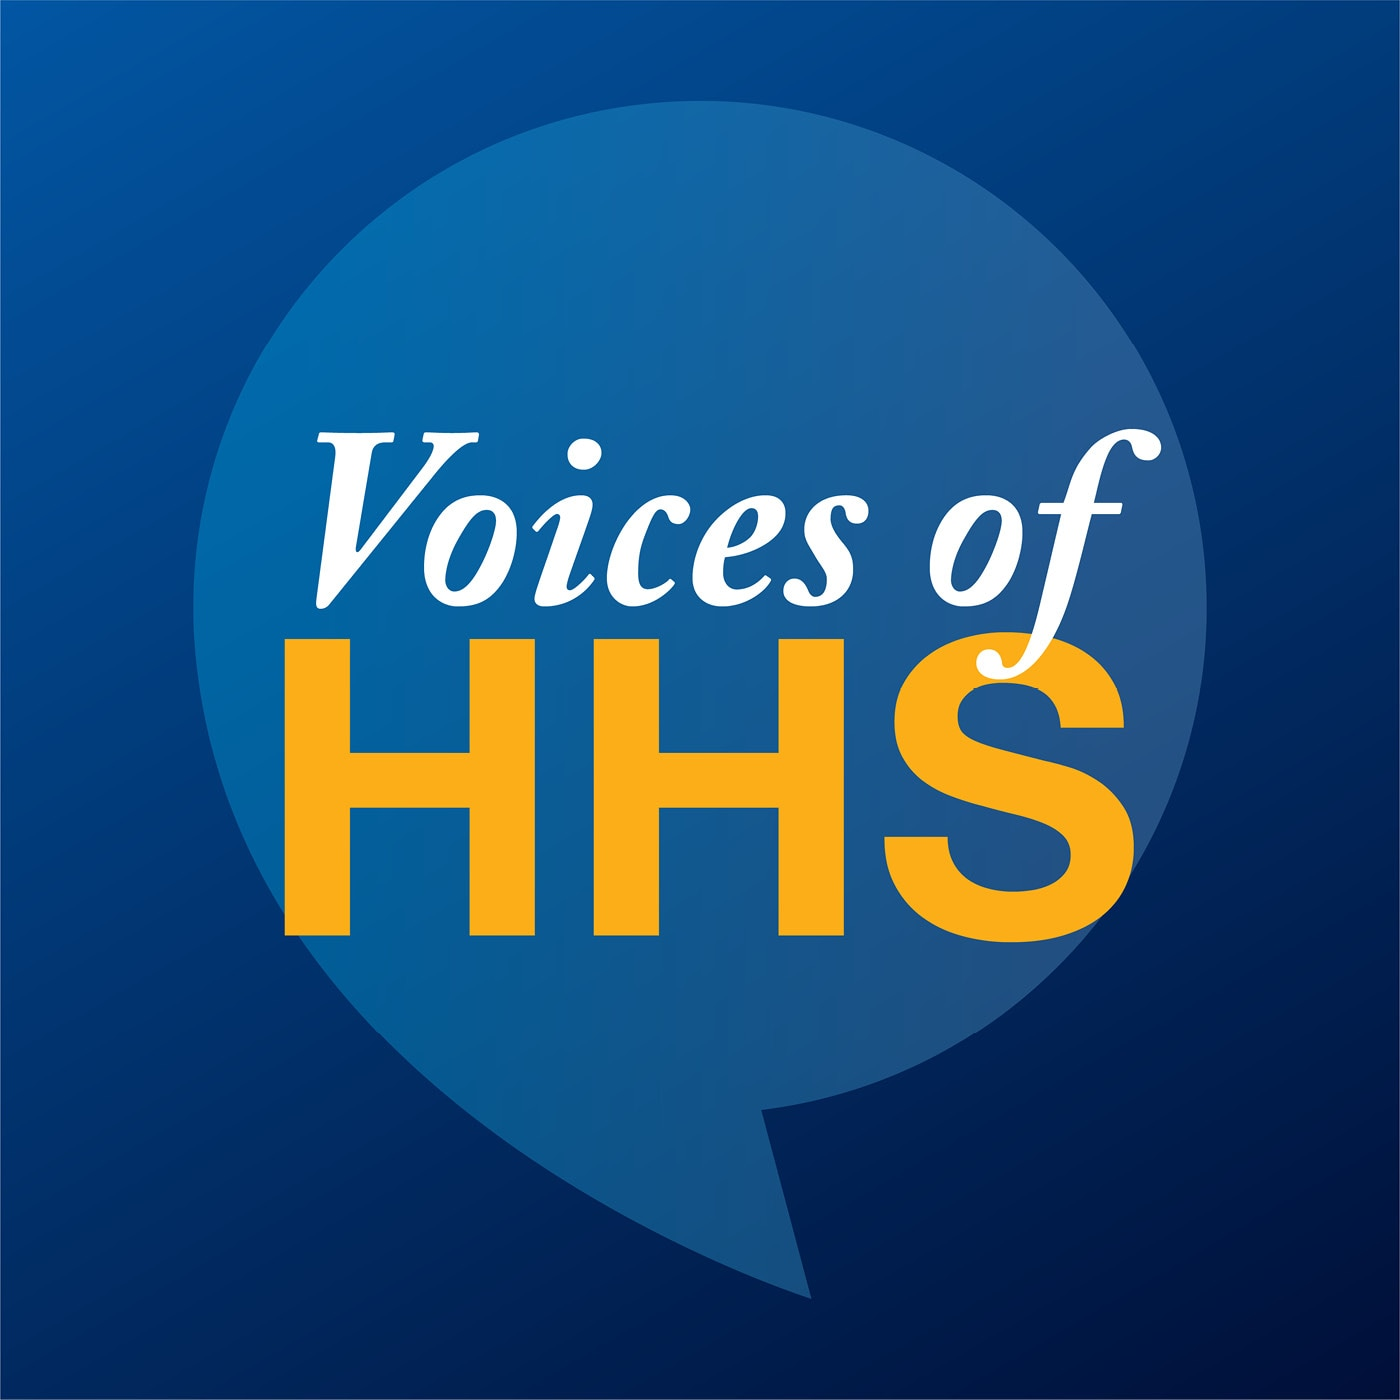 Voices of HHS logo (blue, with quote bubble)